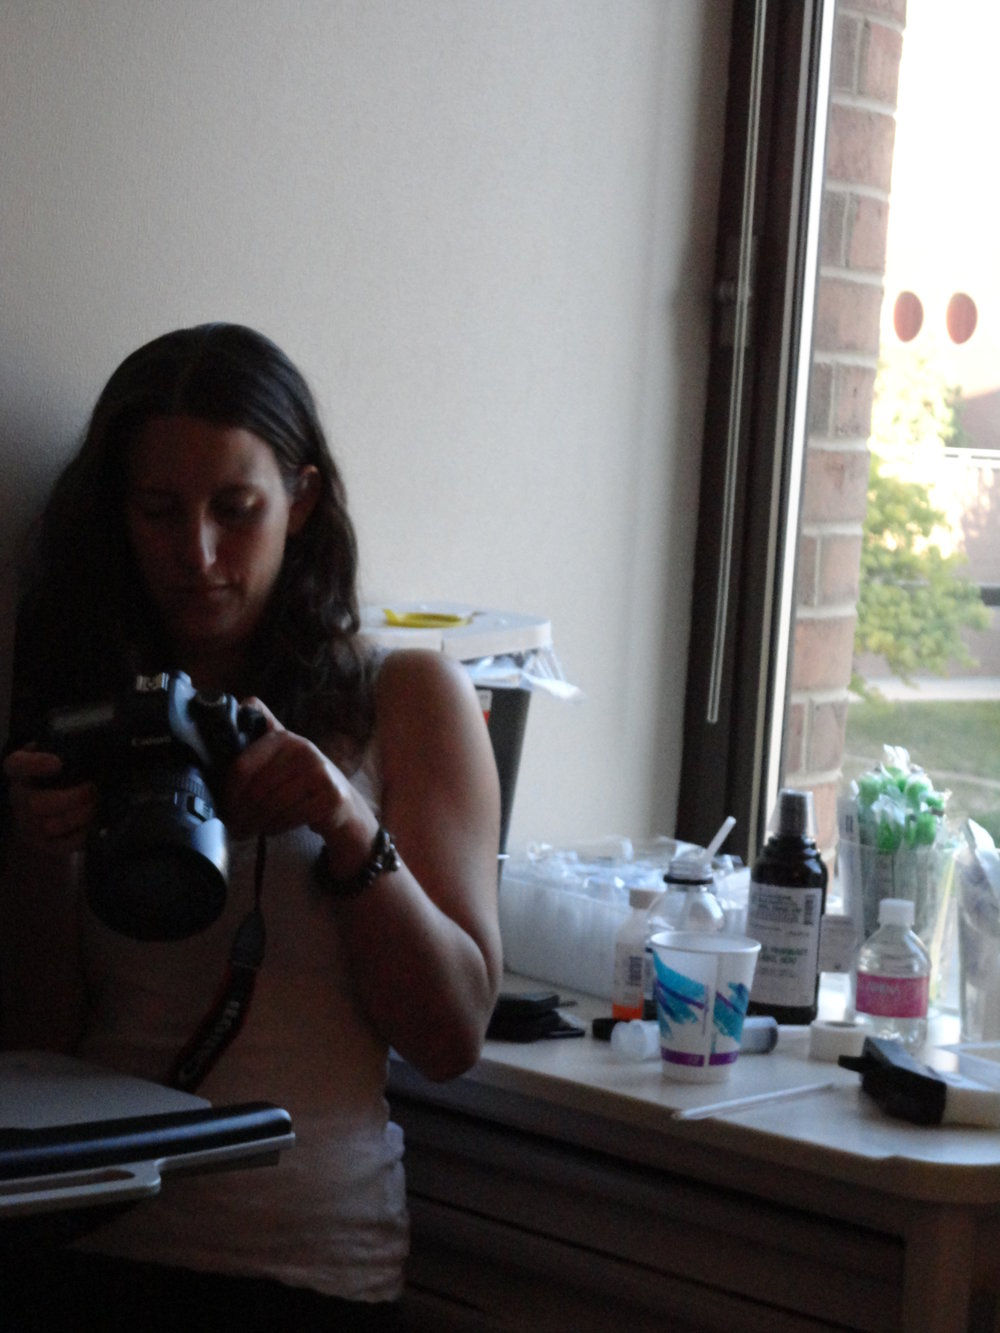 Jen and her camera.